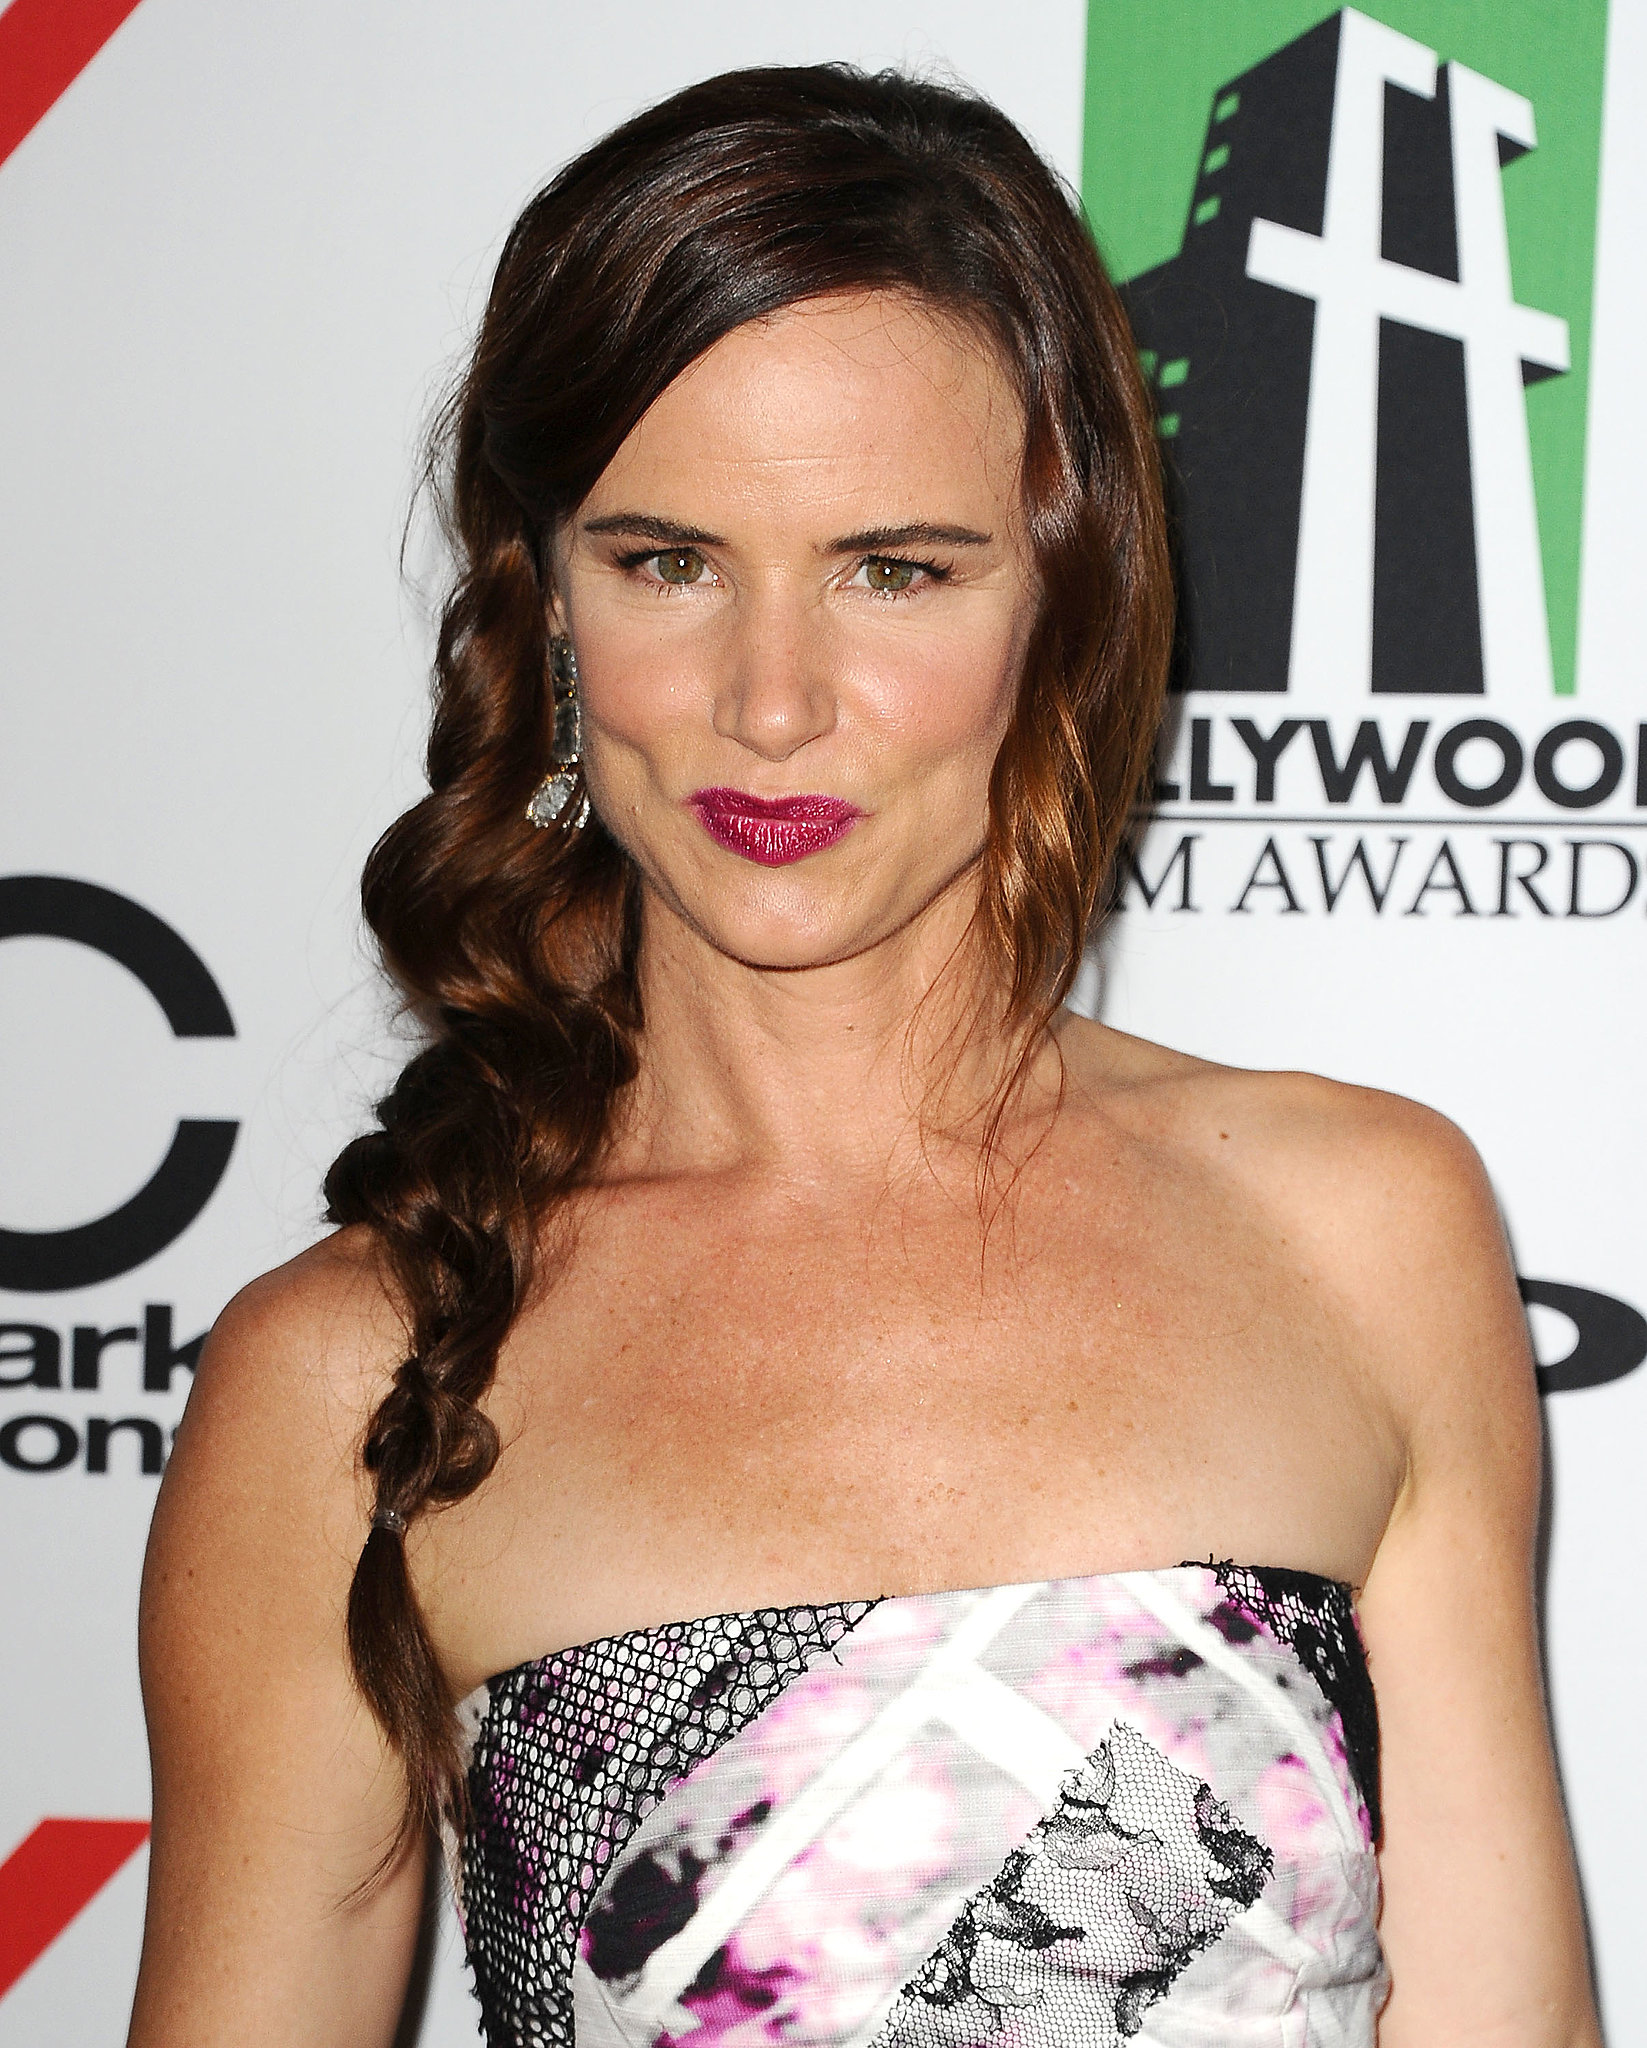 Juliette Lewis's twisted and pulled side braid was fun and unexpected.